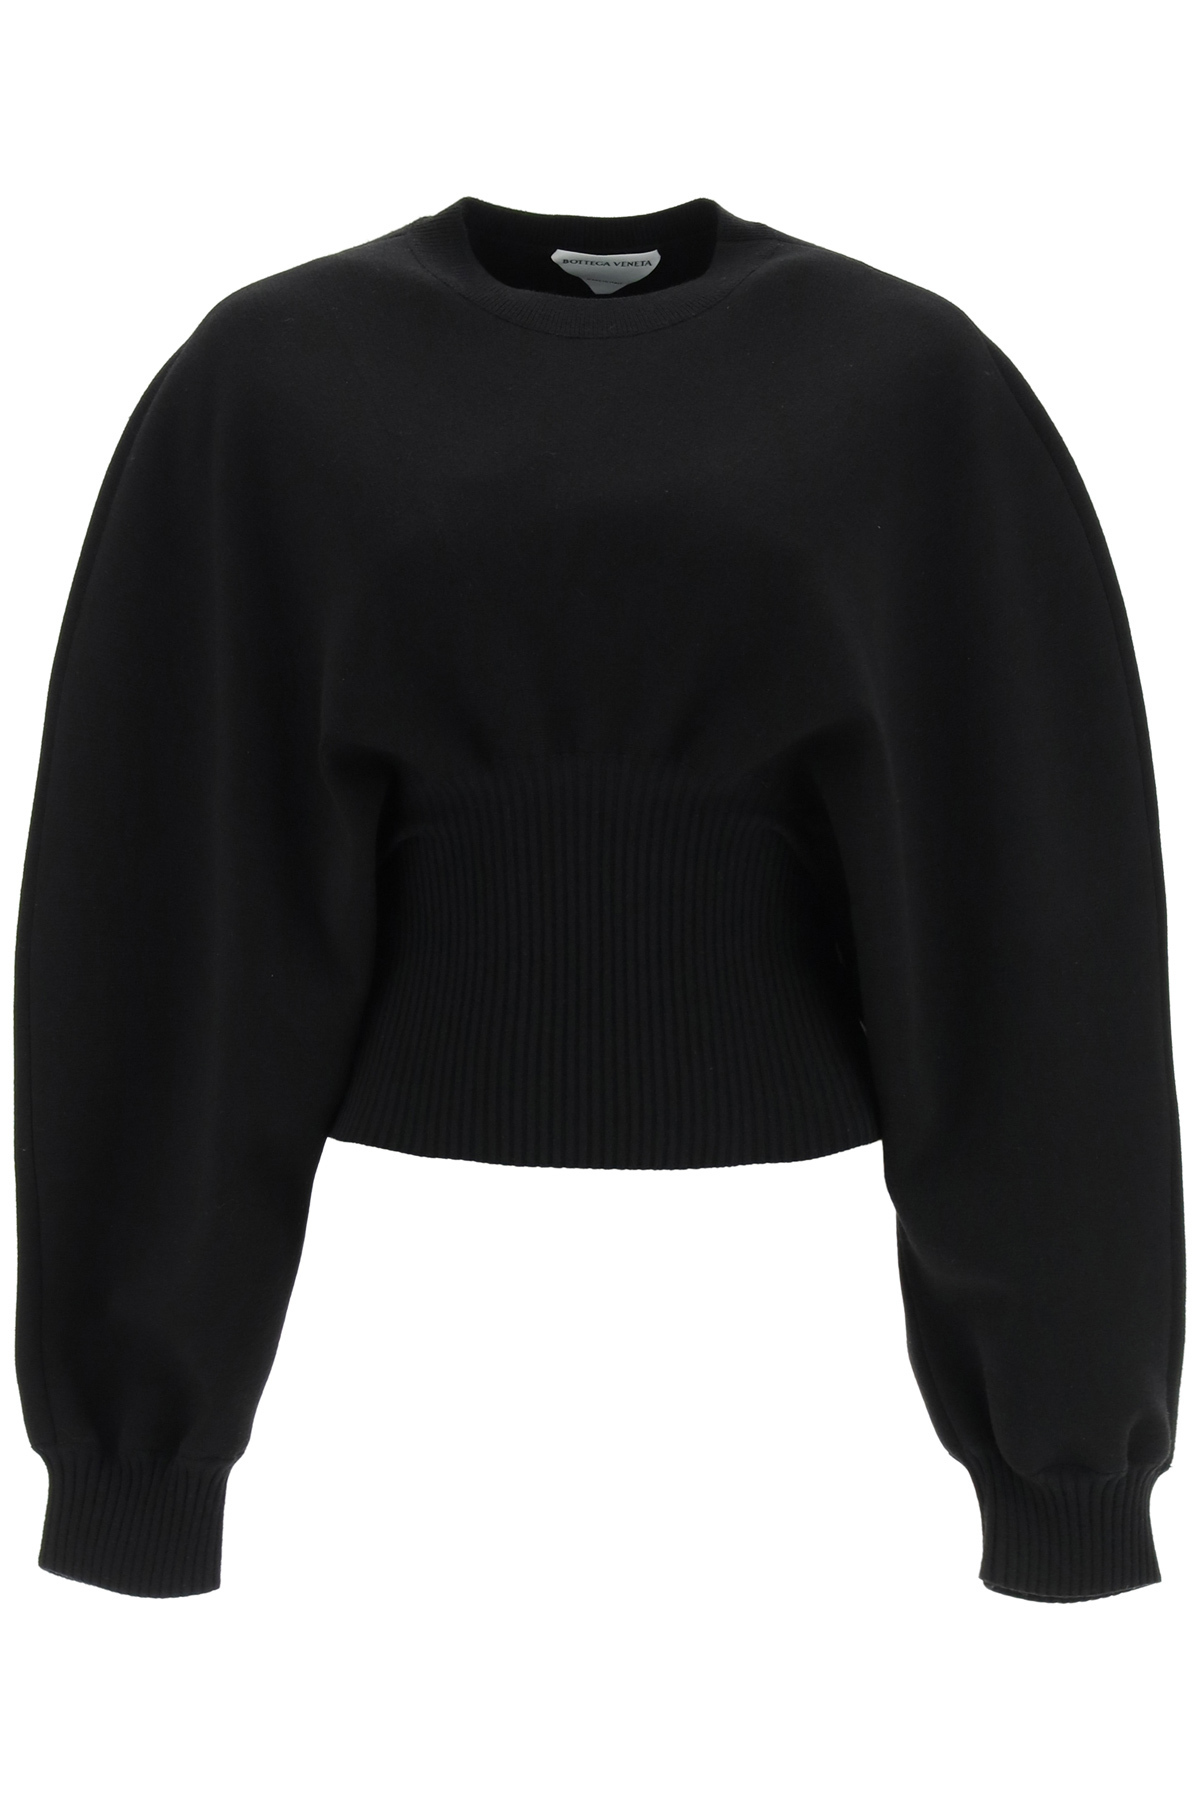 BOTTEGA VENETA BALOON SWEATER IN COMPACT WOOL M Black Wool